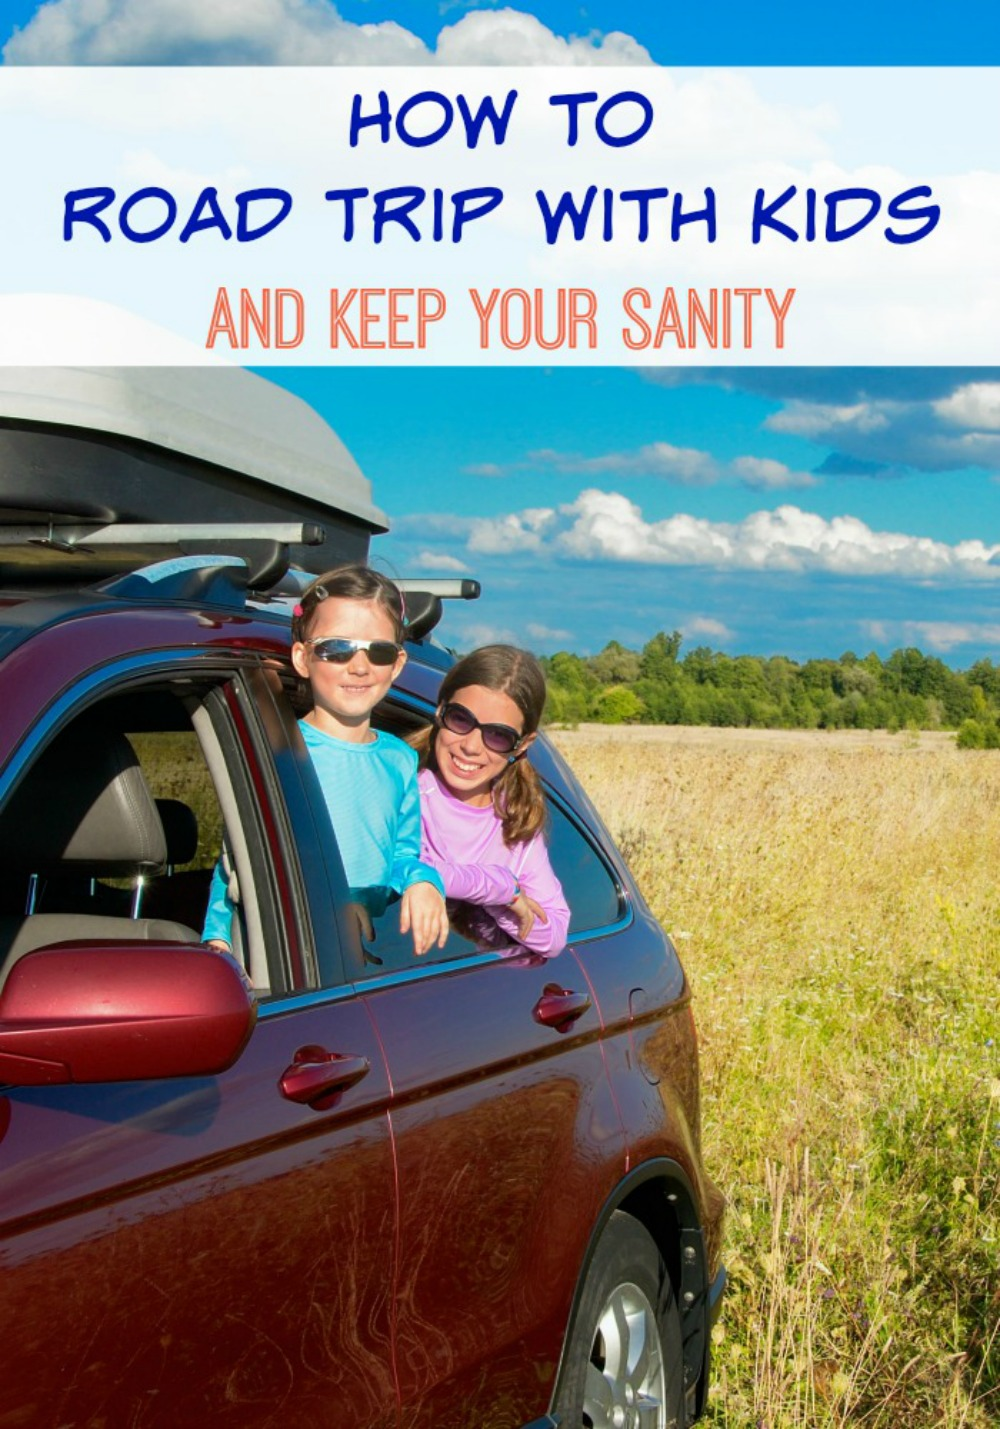 How To Road Trip With Kids And Keep Your Sanity - simplytodaylife.com